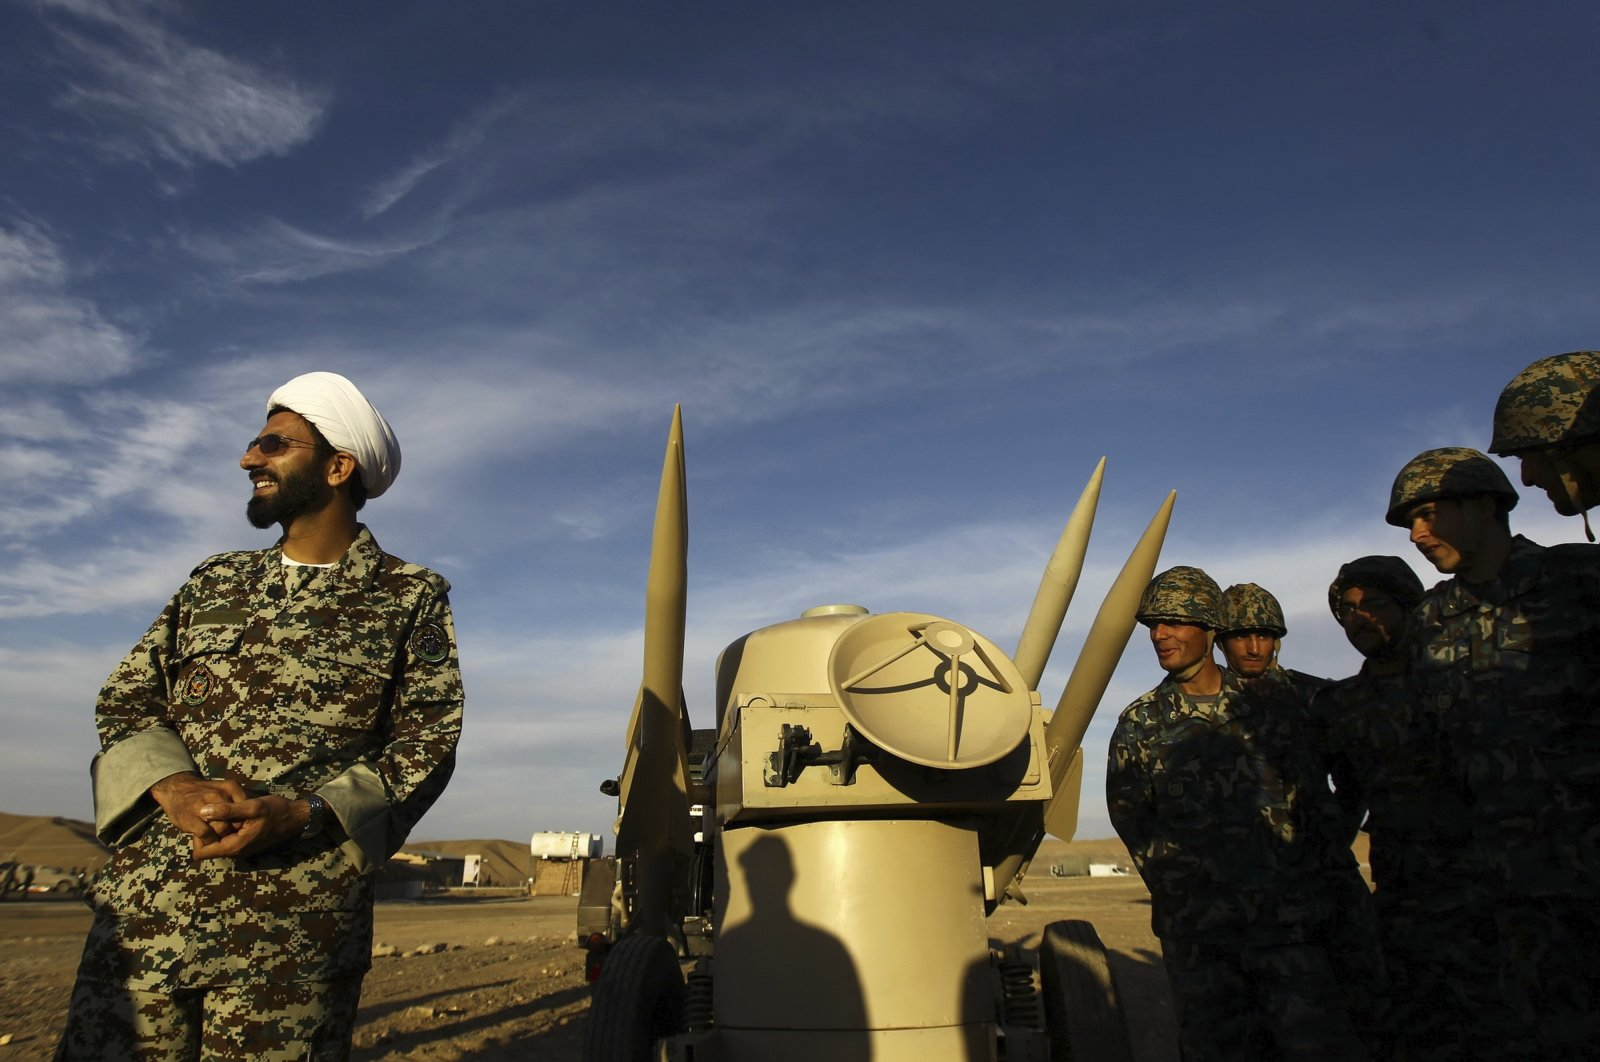 An Iranian clergyman stands next to missiles and army troops during a maneuver in an undisclosed location in Iran, Nov. 13, 2012. (AP Photo)